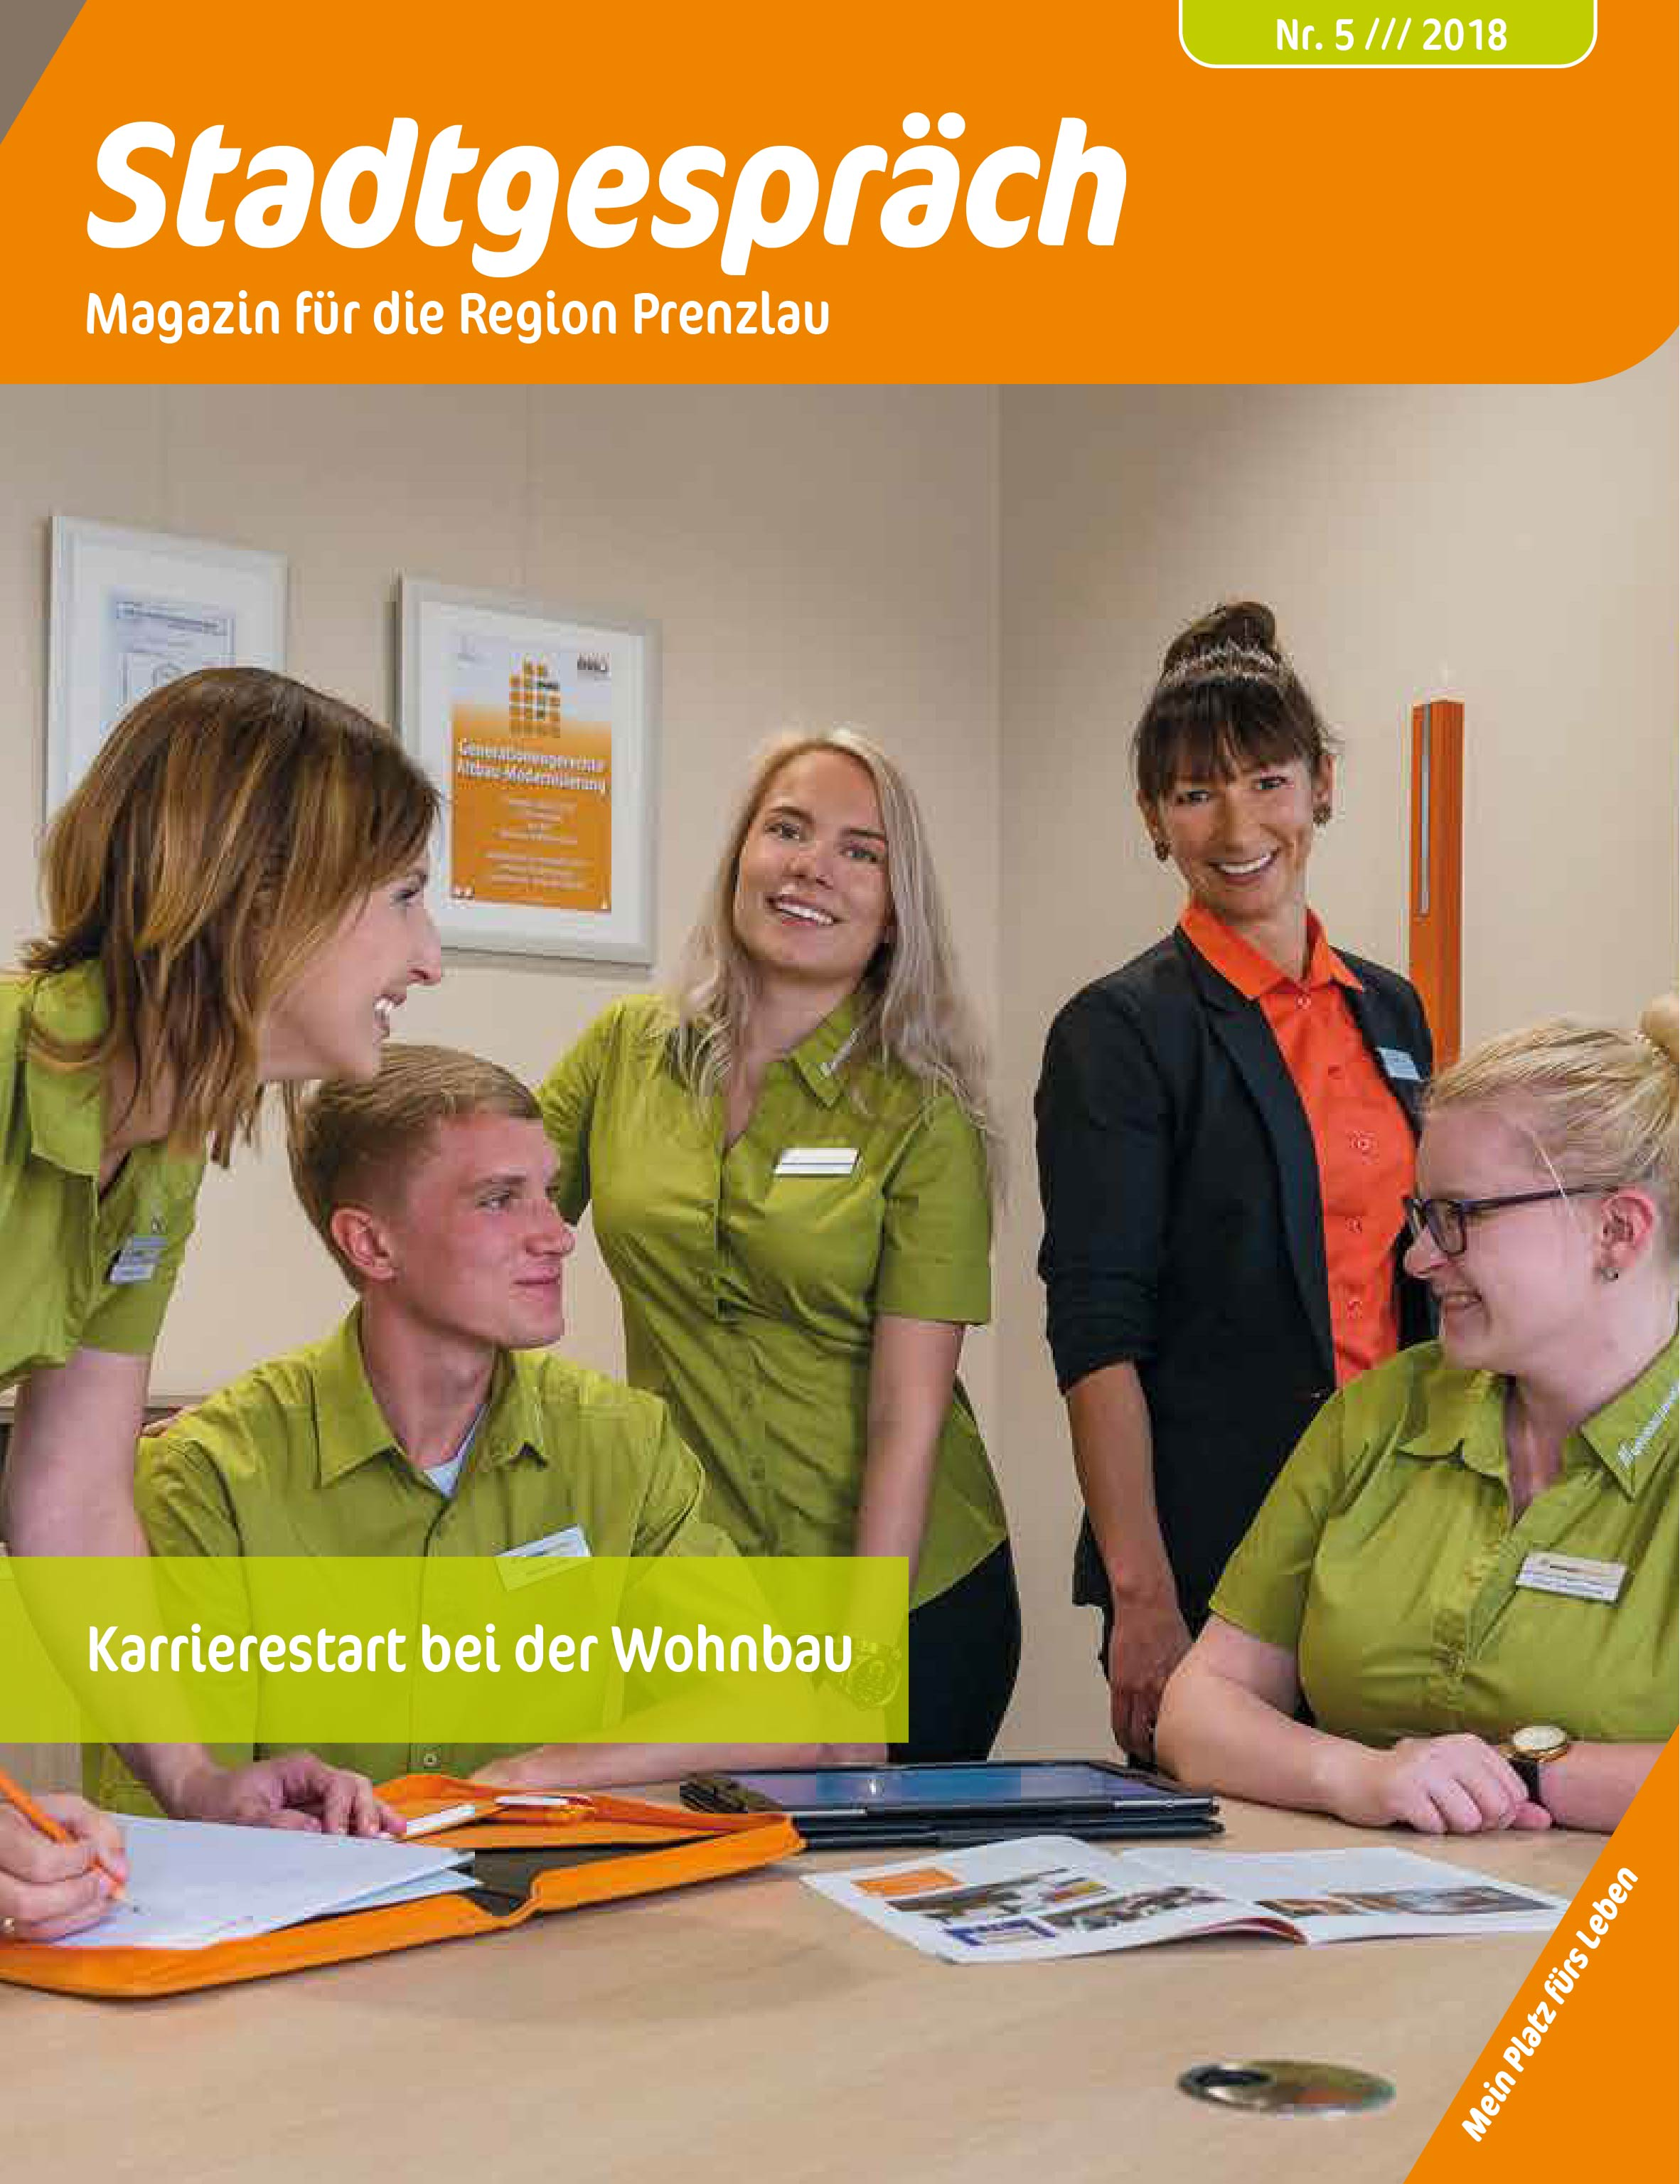 that Männer ab 40 partnersuche question remarkable, rather valuable